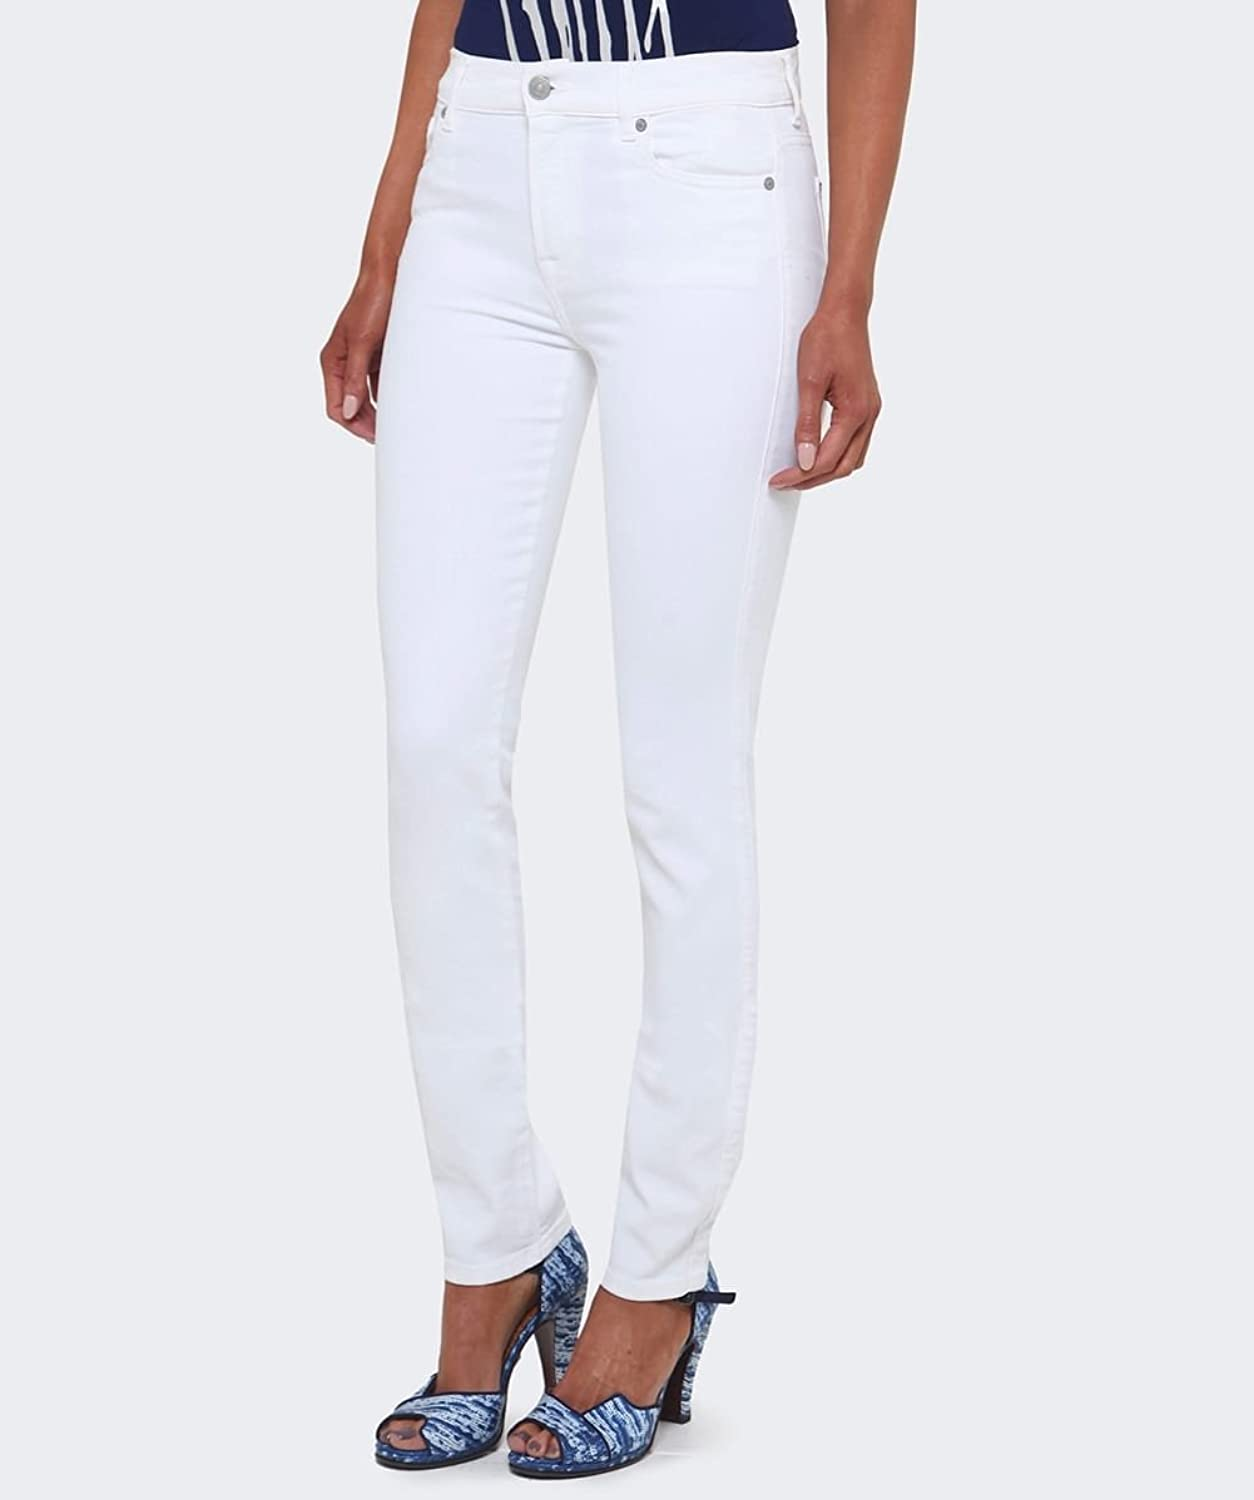 7 For All Mankind Rozie Cropped Skinny Jeans White